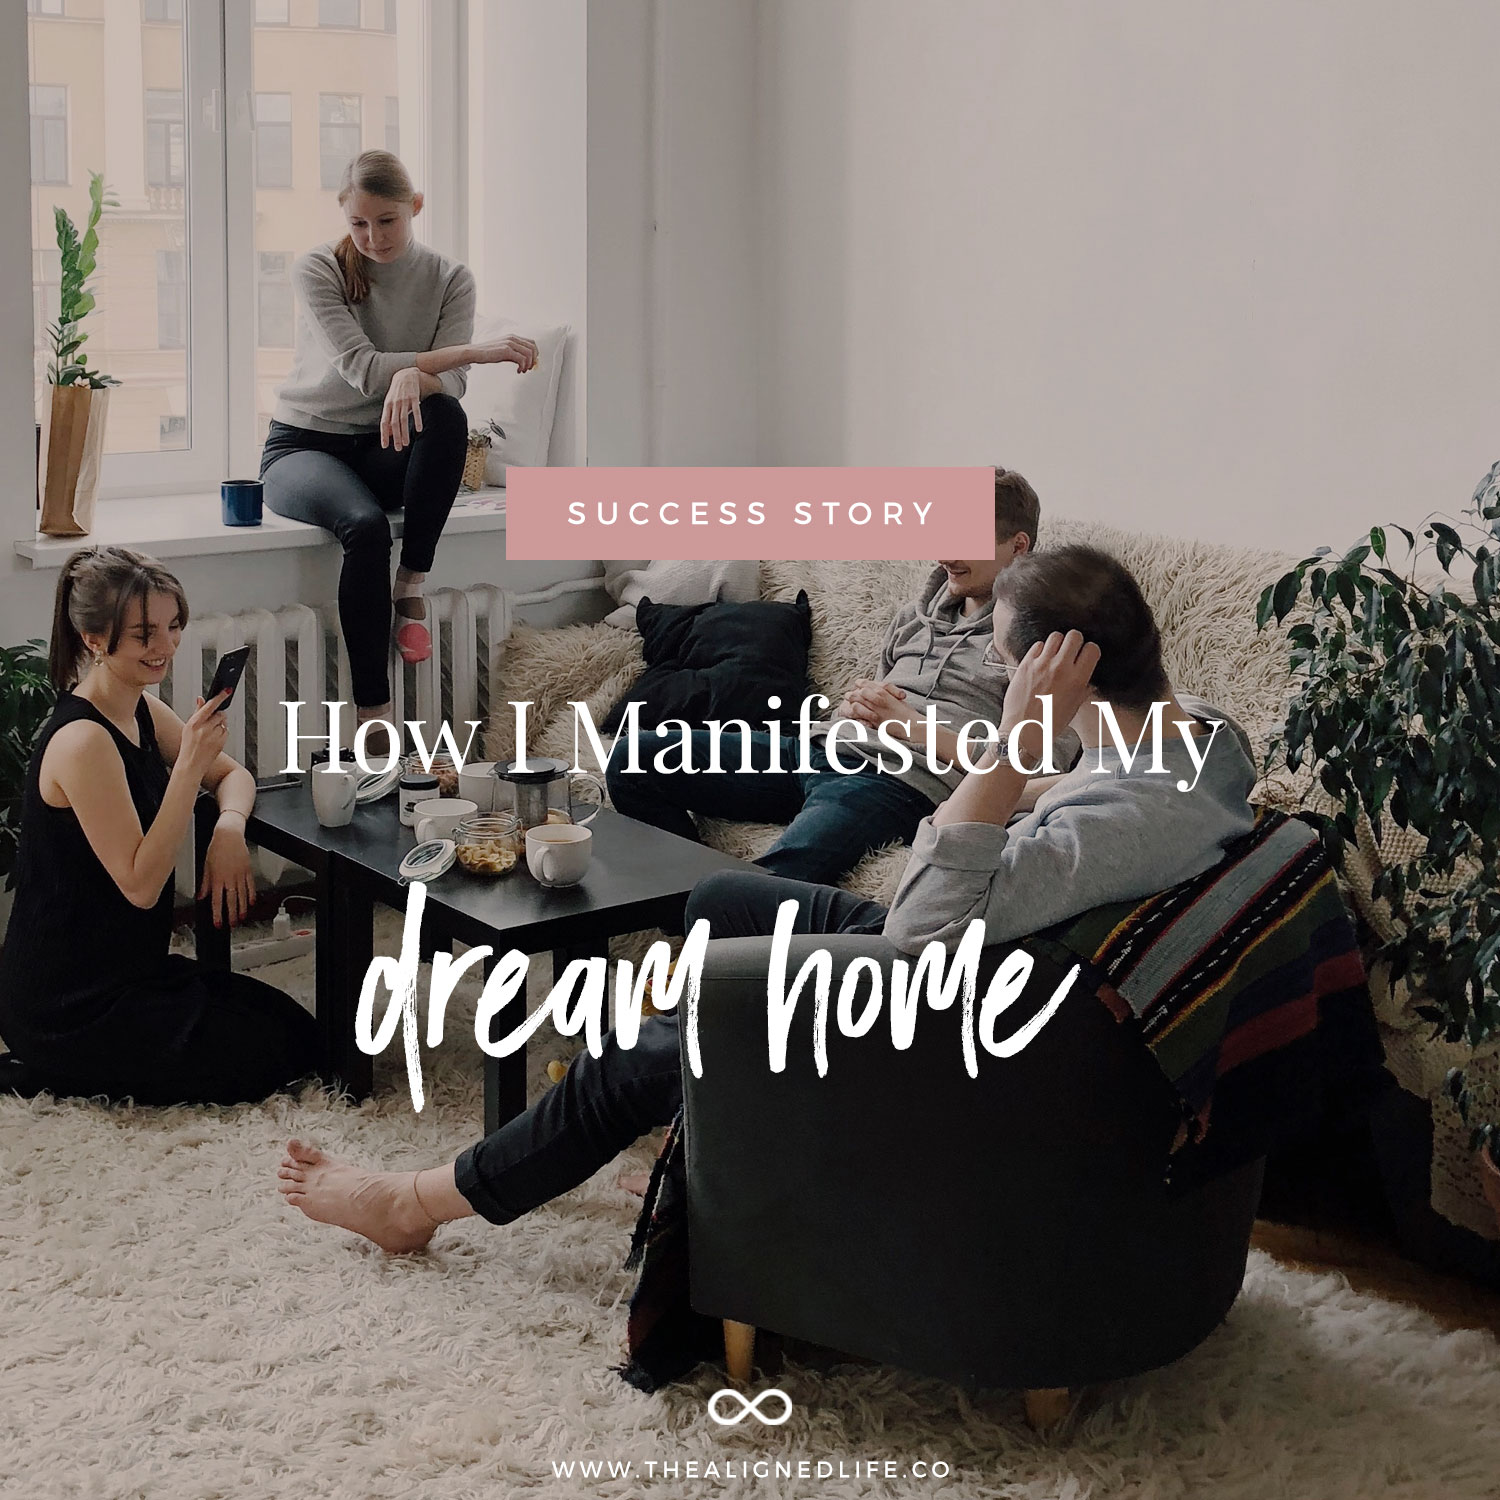 Magic & Manifestation: The True Story of How I Manifested My Dream Home